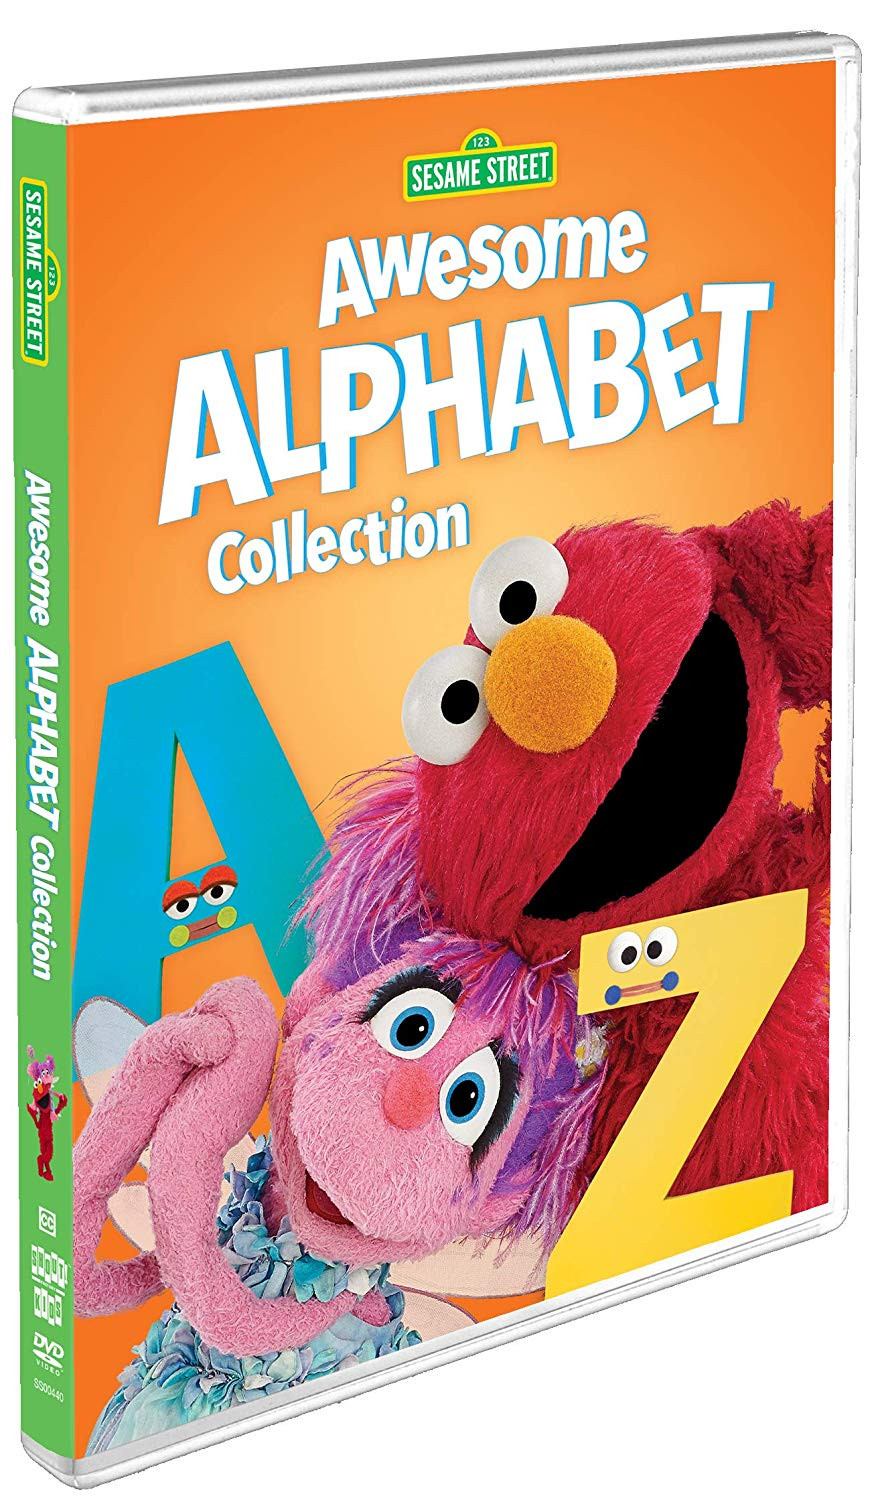 sesame street awesome alphabet collection